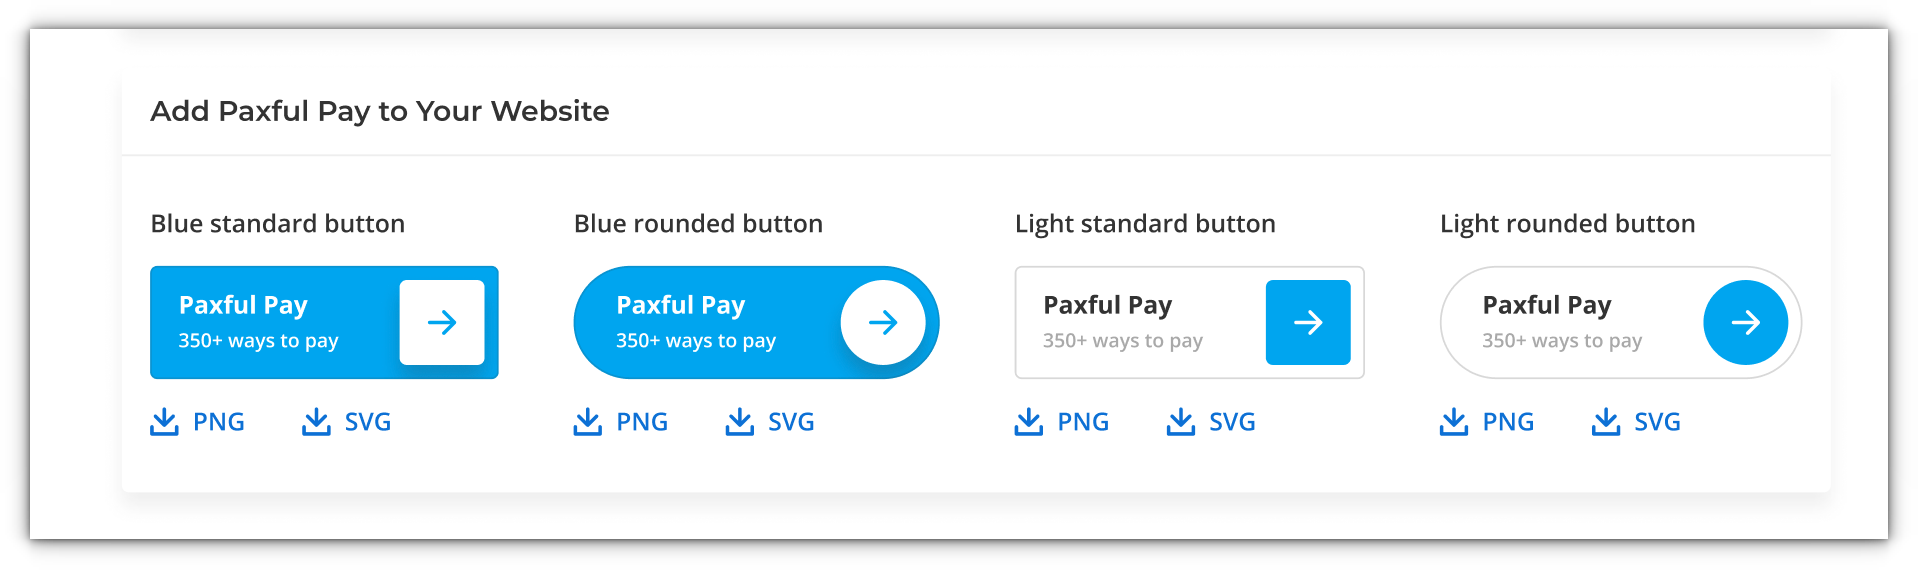 Paxful_Pay_Change_Button.png